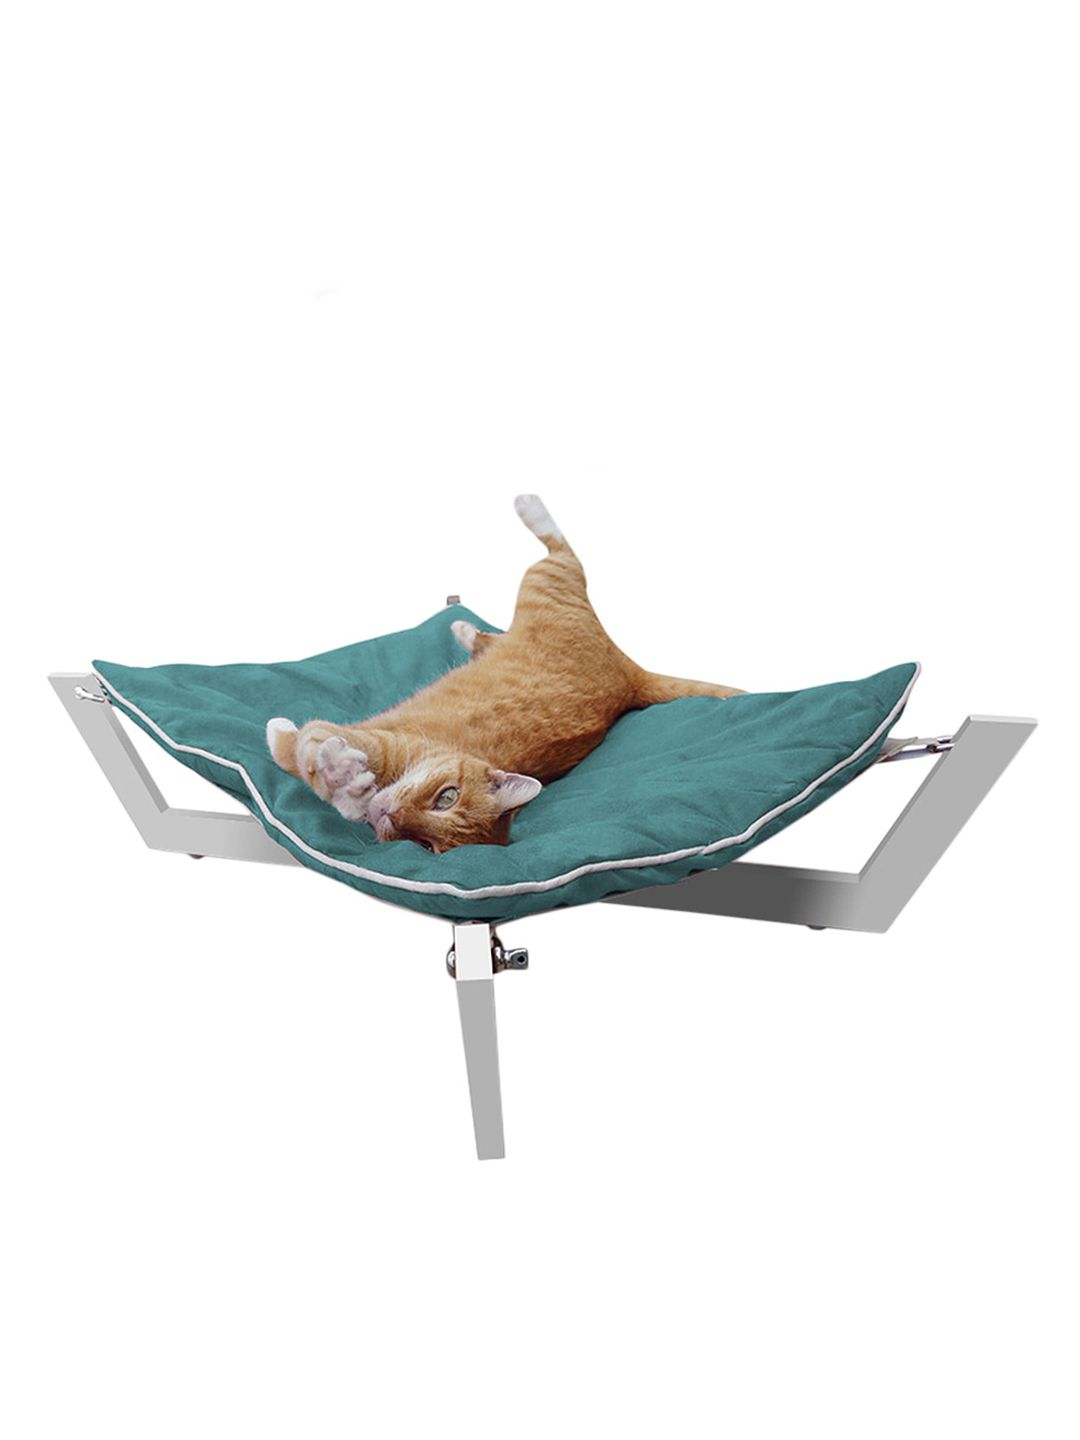 Pet lounge studios is all about creating comfortable furniture for